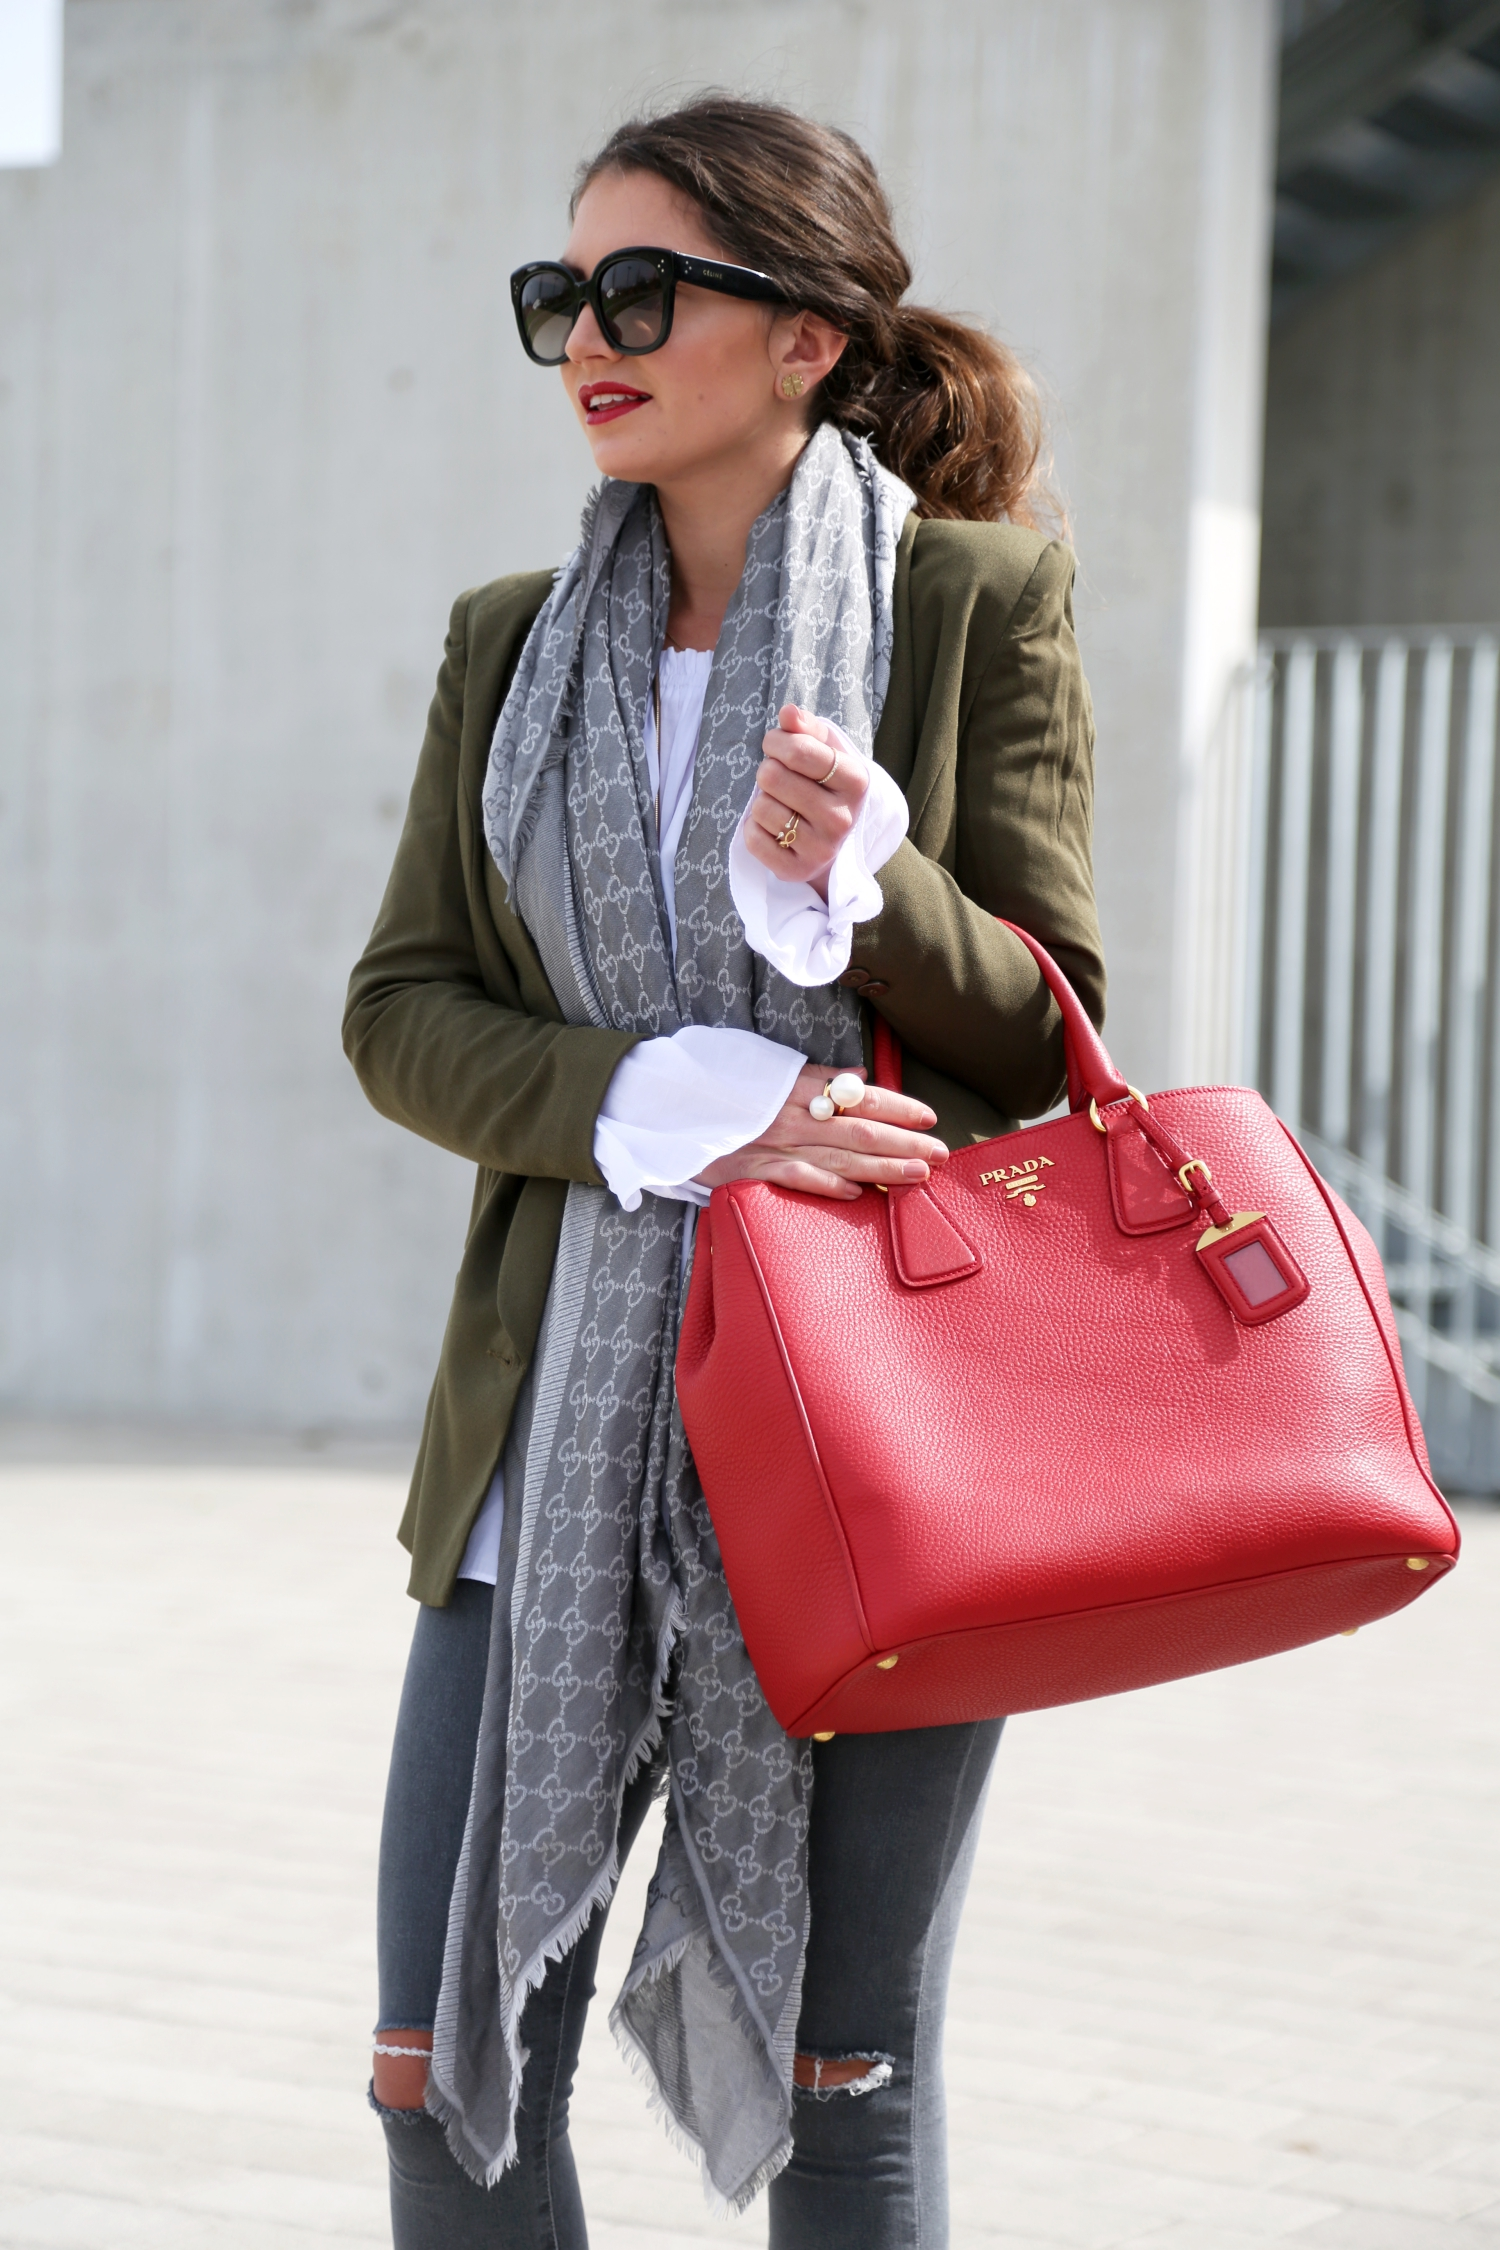 outfit-fashionhippieloves-german-fashionblogger-off-shoulder-prada-bag-celine-sunglasses-gucci-scarf